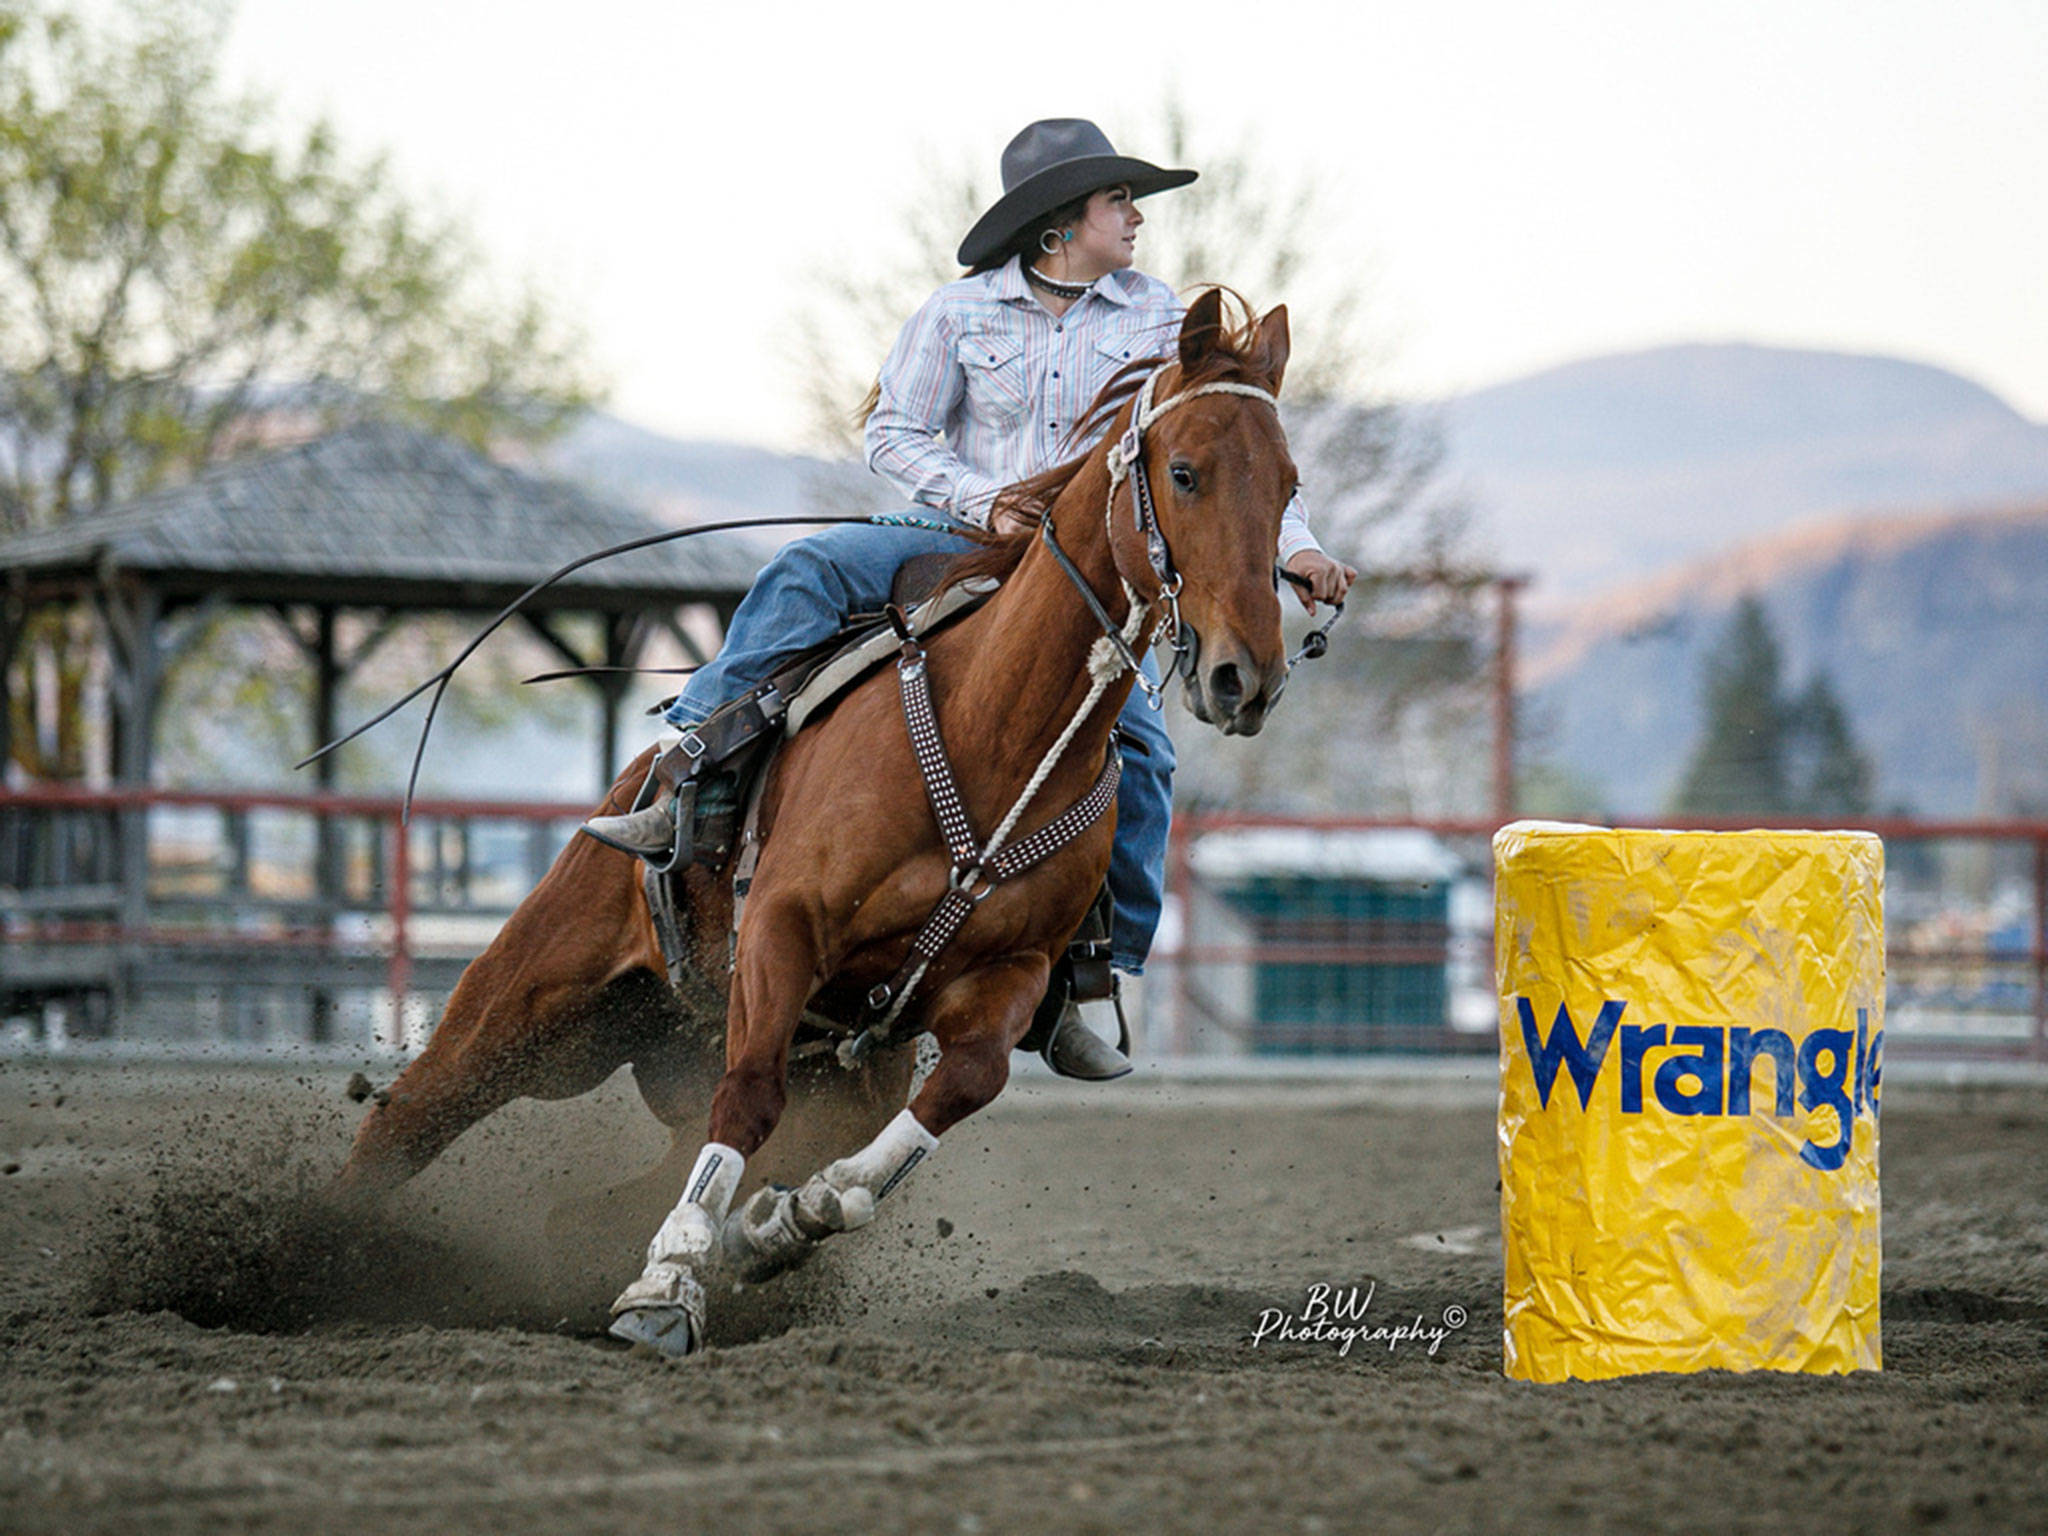 Snohomish High School senior Georgia McAuliffe was crowned the All-Around Cowgirl by the Washington State High School Rodeo Association. (BW photography)